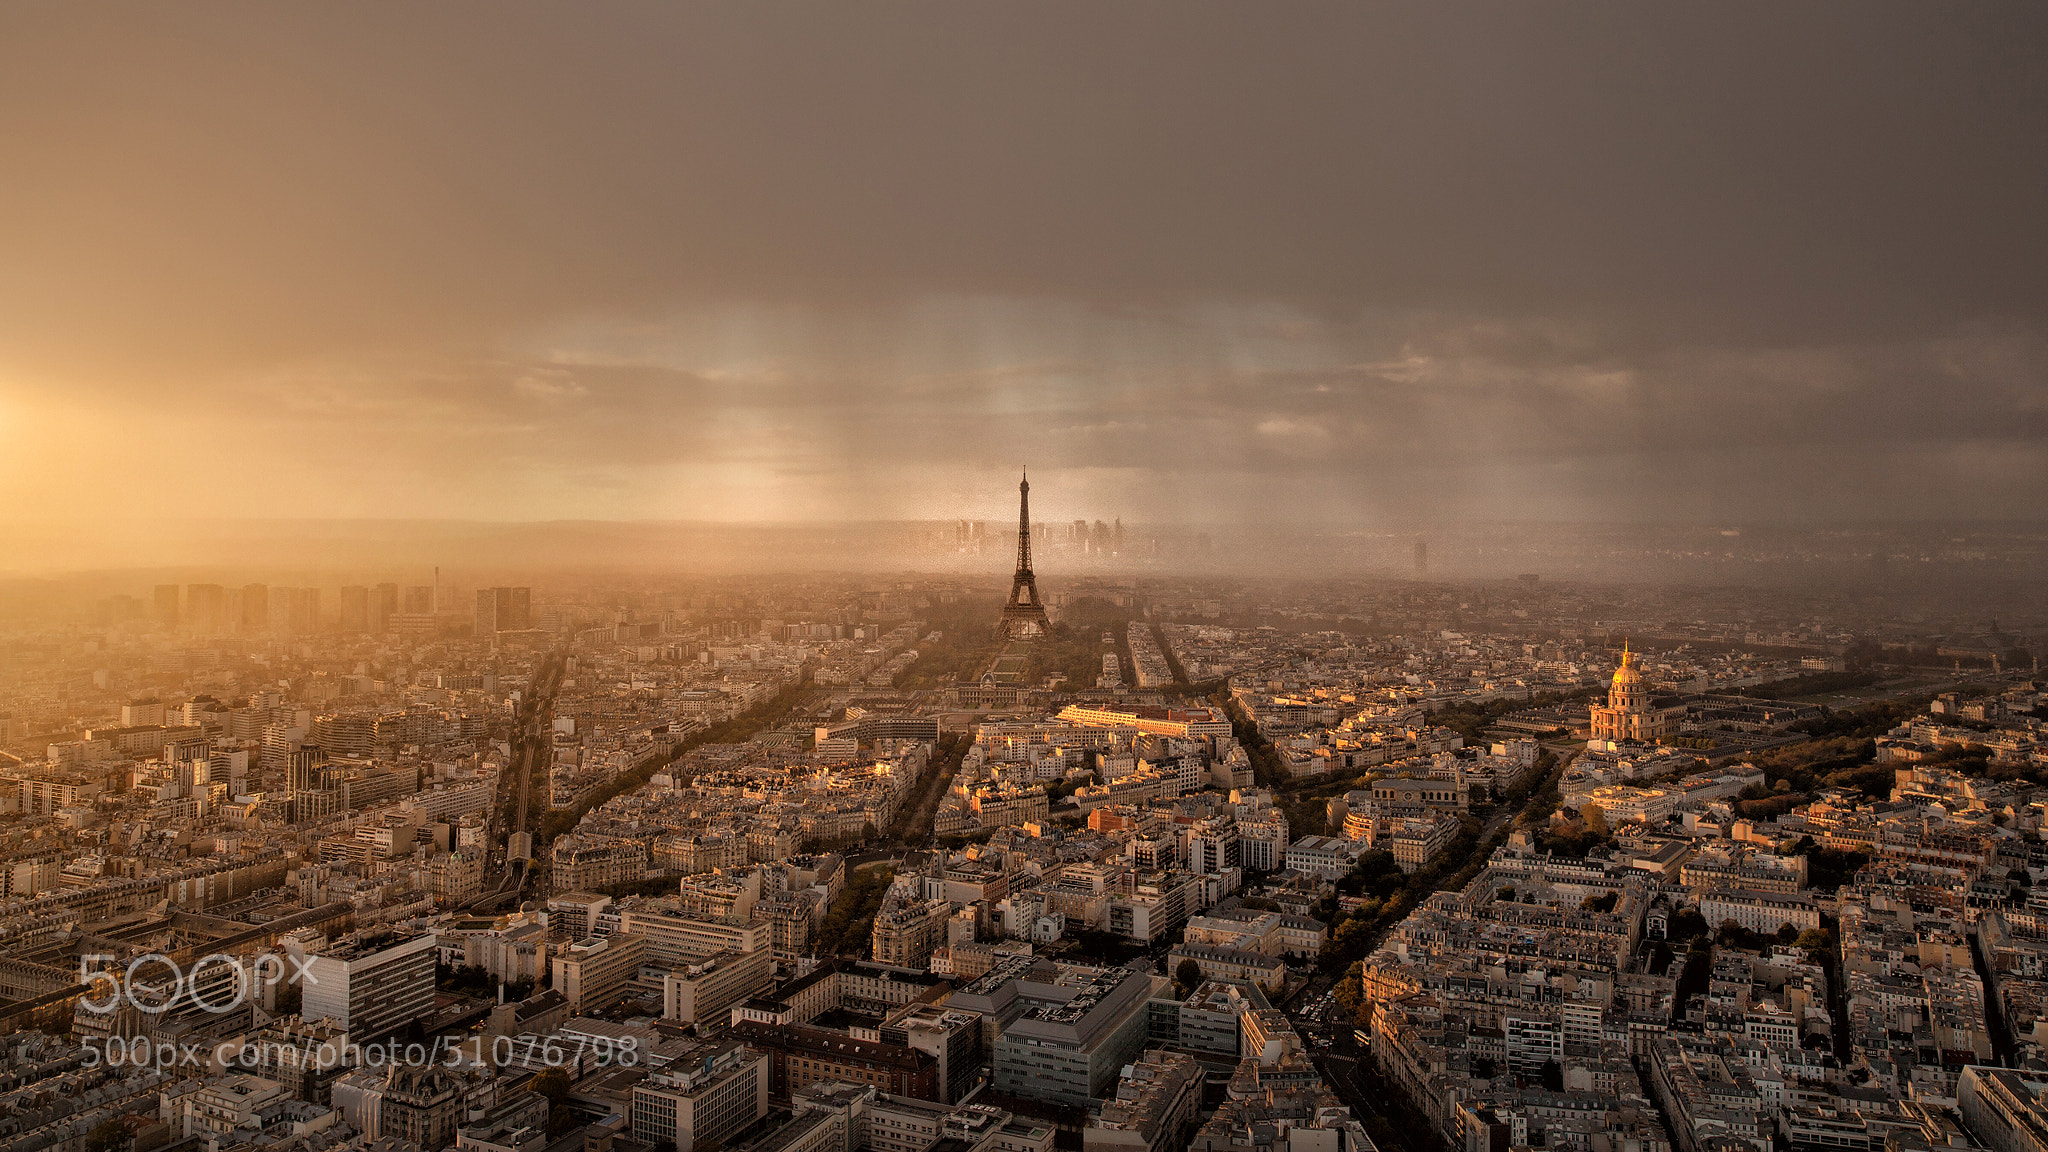 Photograph Paris • Sunset and Rain by Thomas Fliegner on 500px